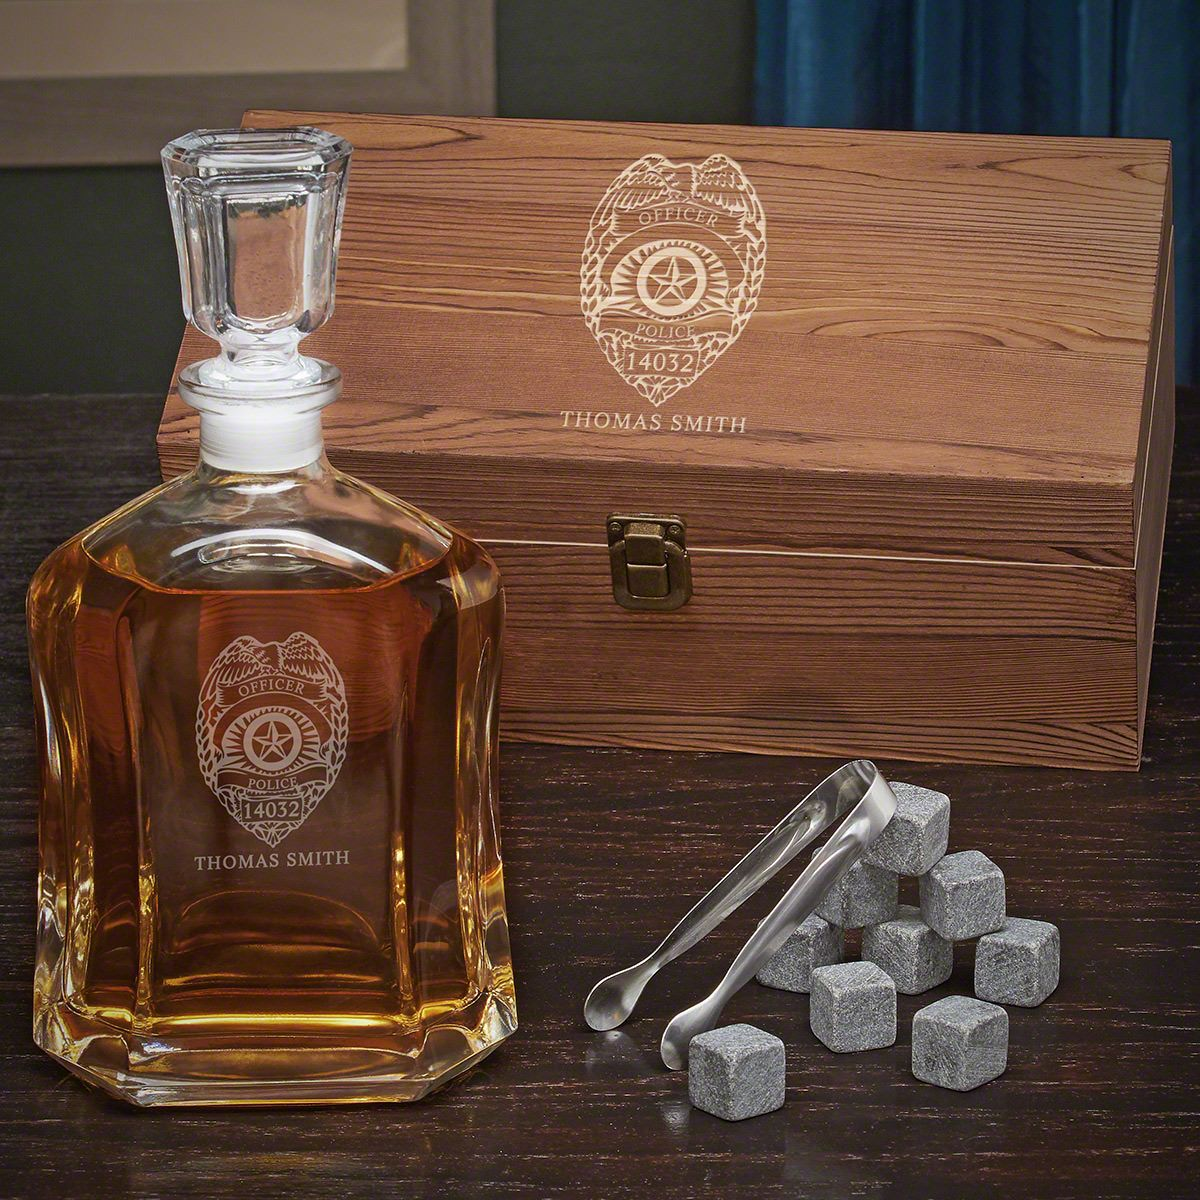 Police Badge Personalized Whiskey Argos Decanter Set - Gift for Police Officers